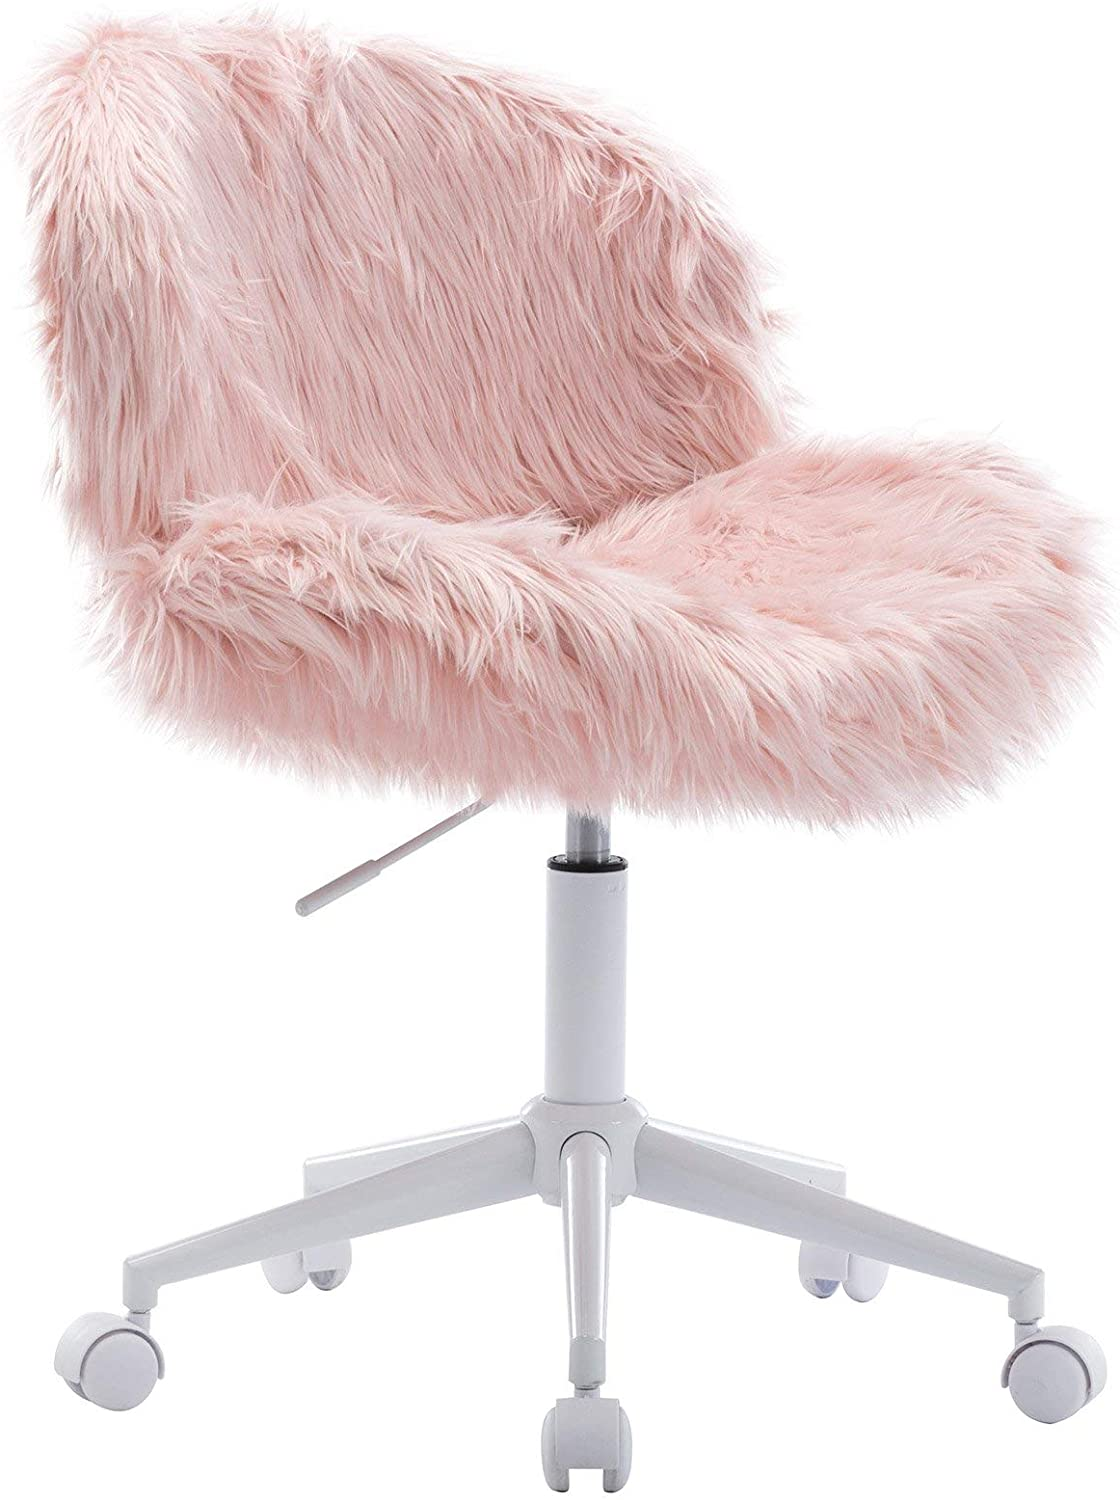 Wahson Cute Faux Fur Task Chair with Wheels, Comfy Sherpa Fuzzy Swivel Desk Chair Armless, for Adults and Kids, Living Room, Bedroom, Vanity, Home Office, Blush Pink